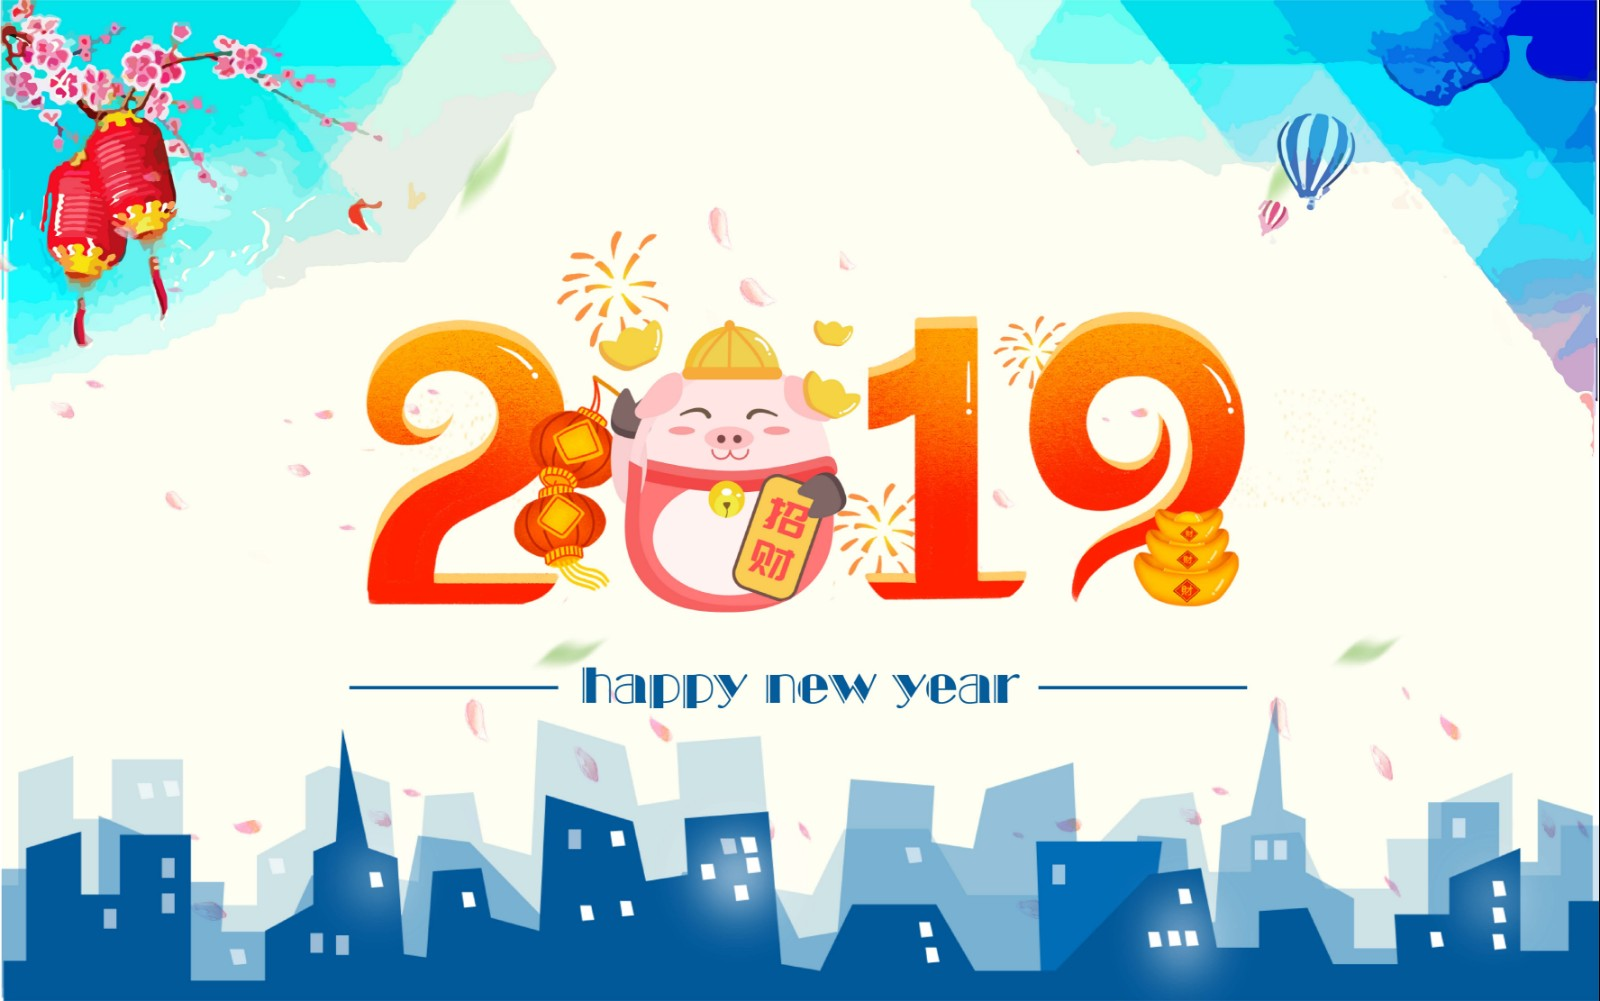 2019 新年快乐 happy new year 封面